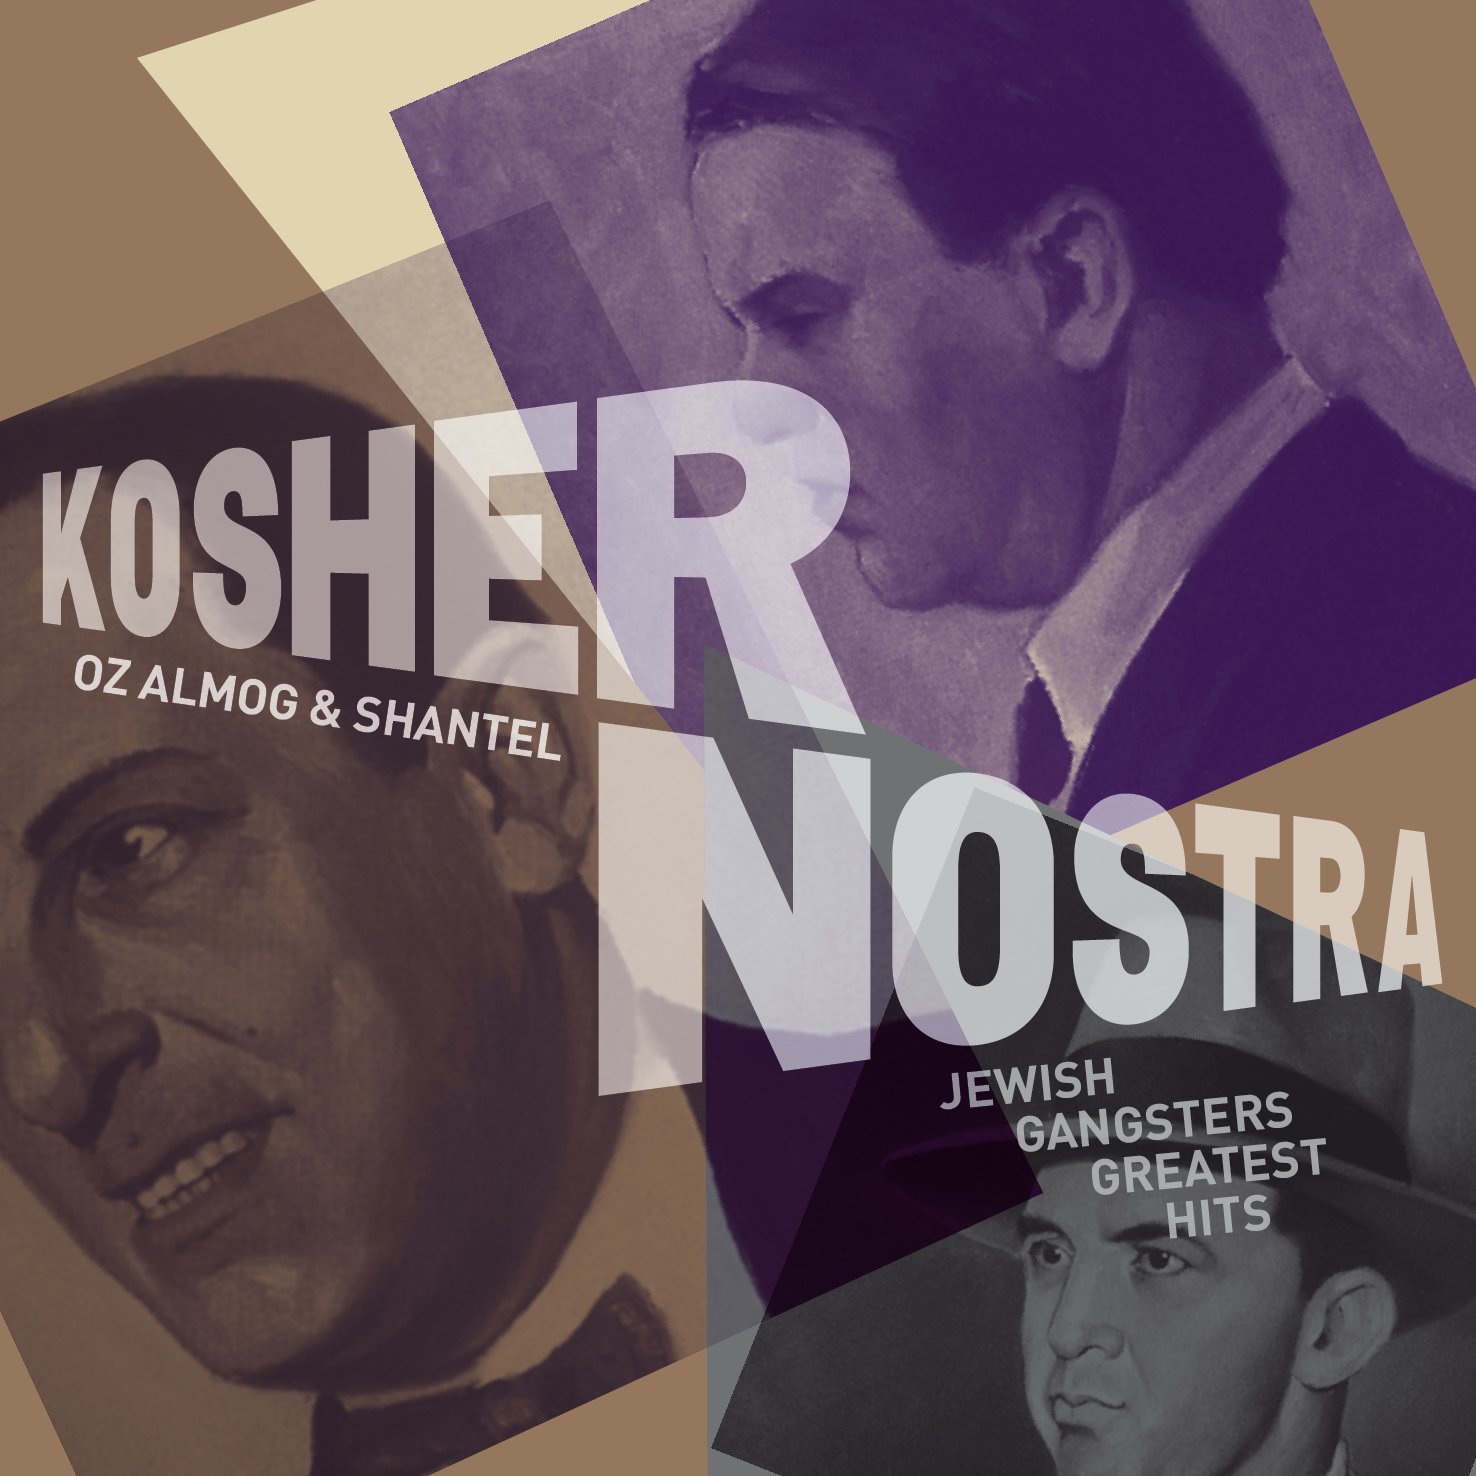 Kosher Nostra - Jewish Gangsters Greatest Hits